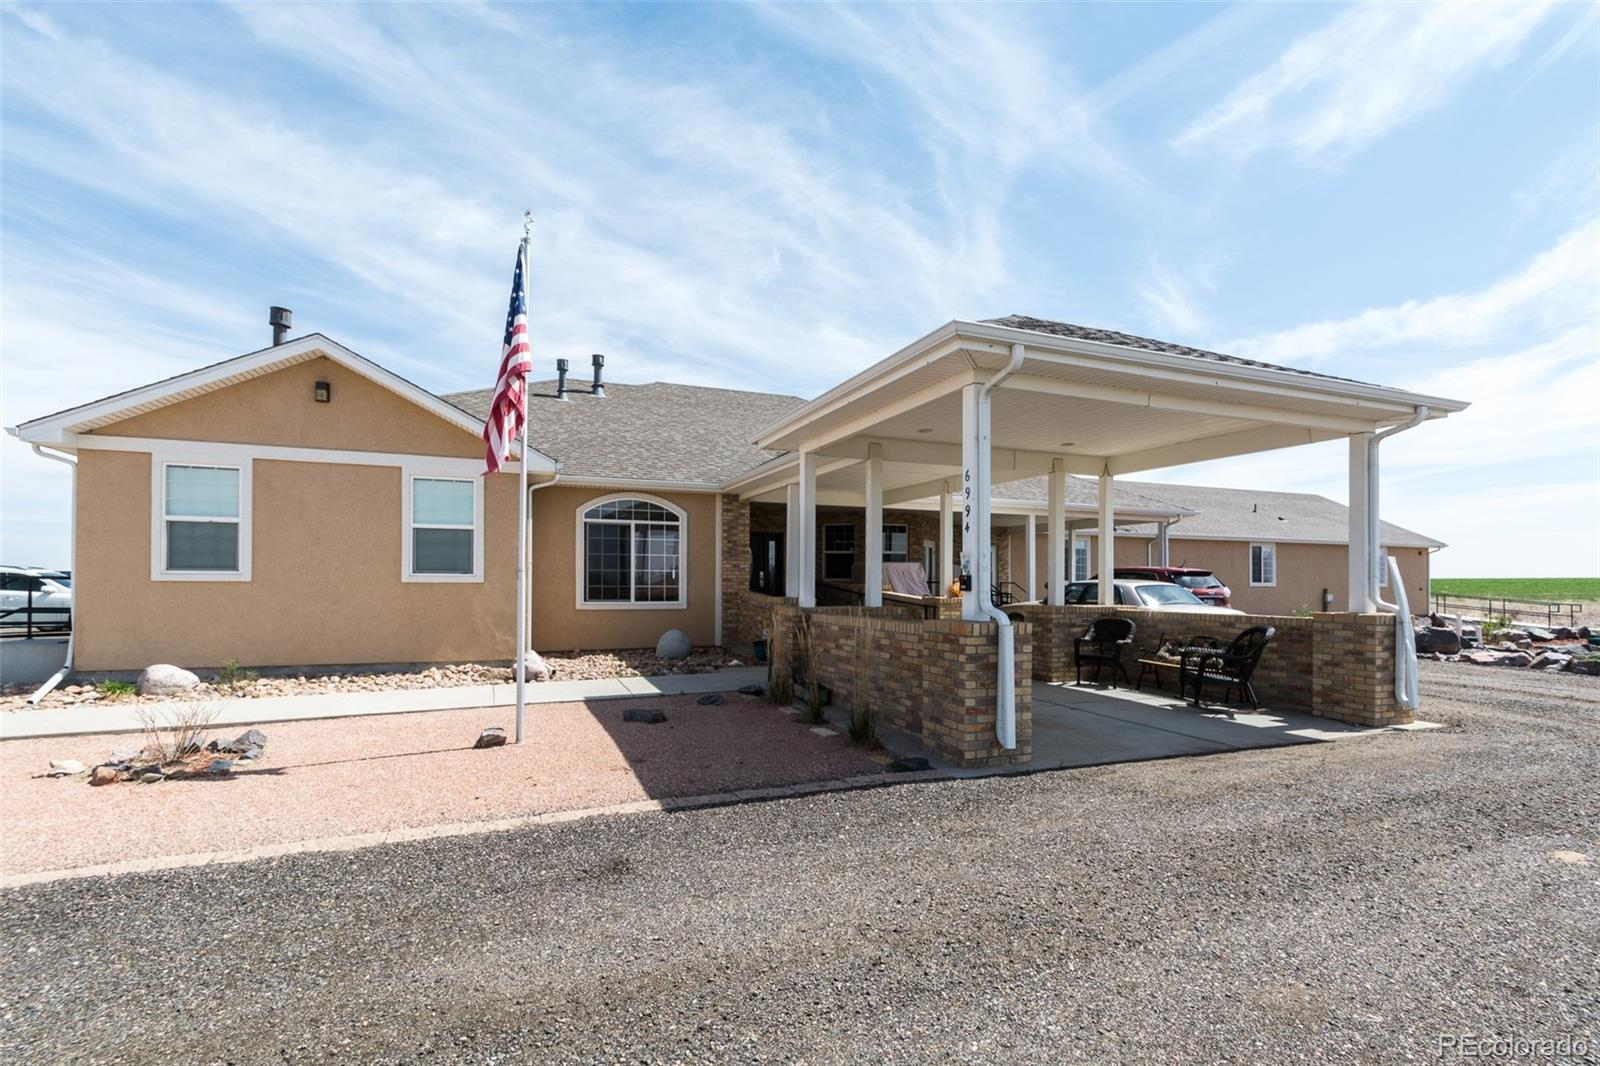 6994 County Road 39, Fort Lupton, CO  80621 - Featured Property